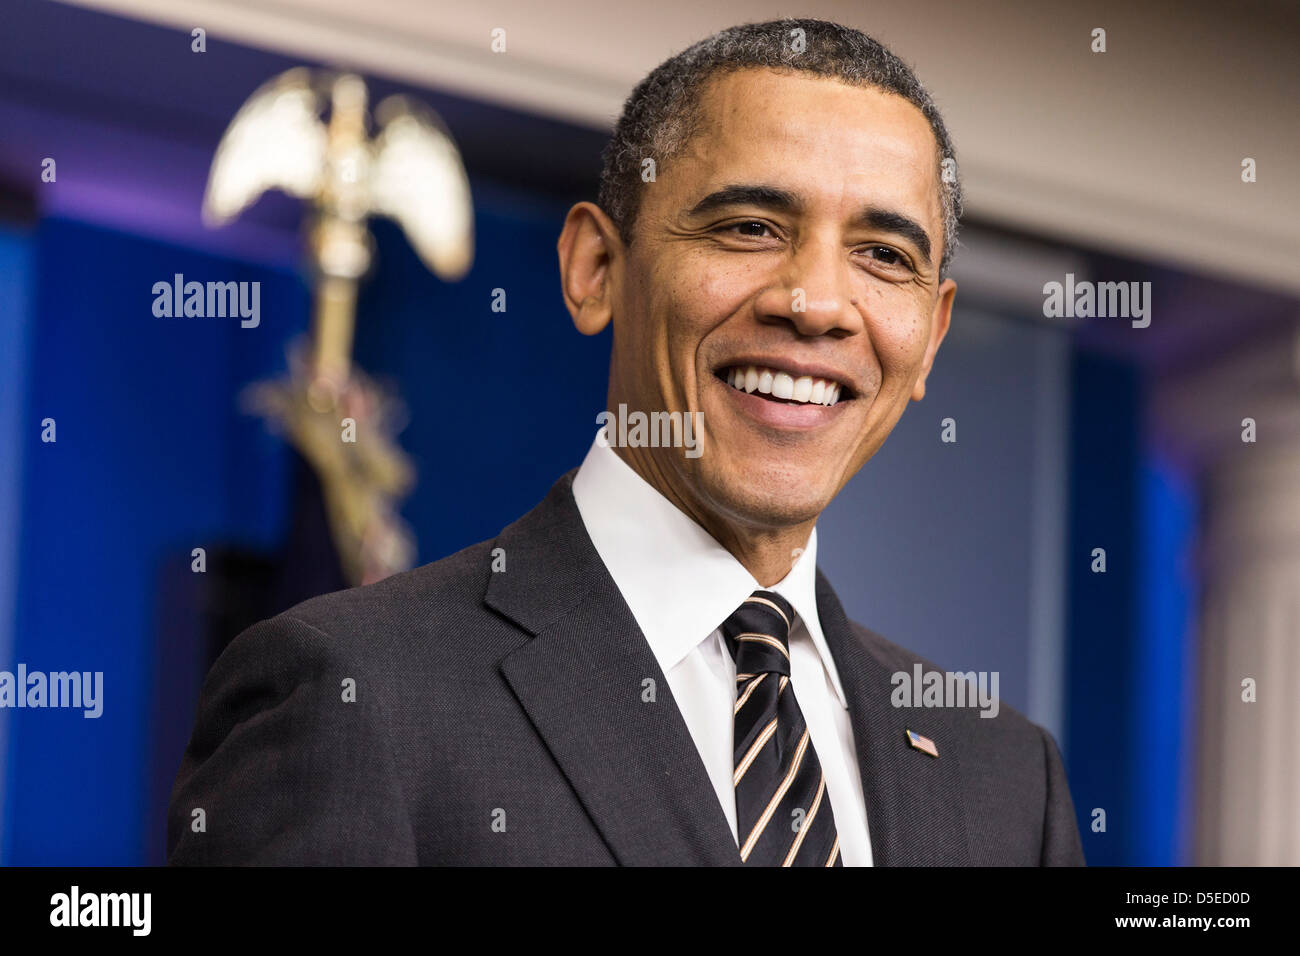 U.S. President Barack Obama calls on Congress to pass a small package of spending cuts and tax reforms. - Stock Image